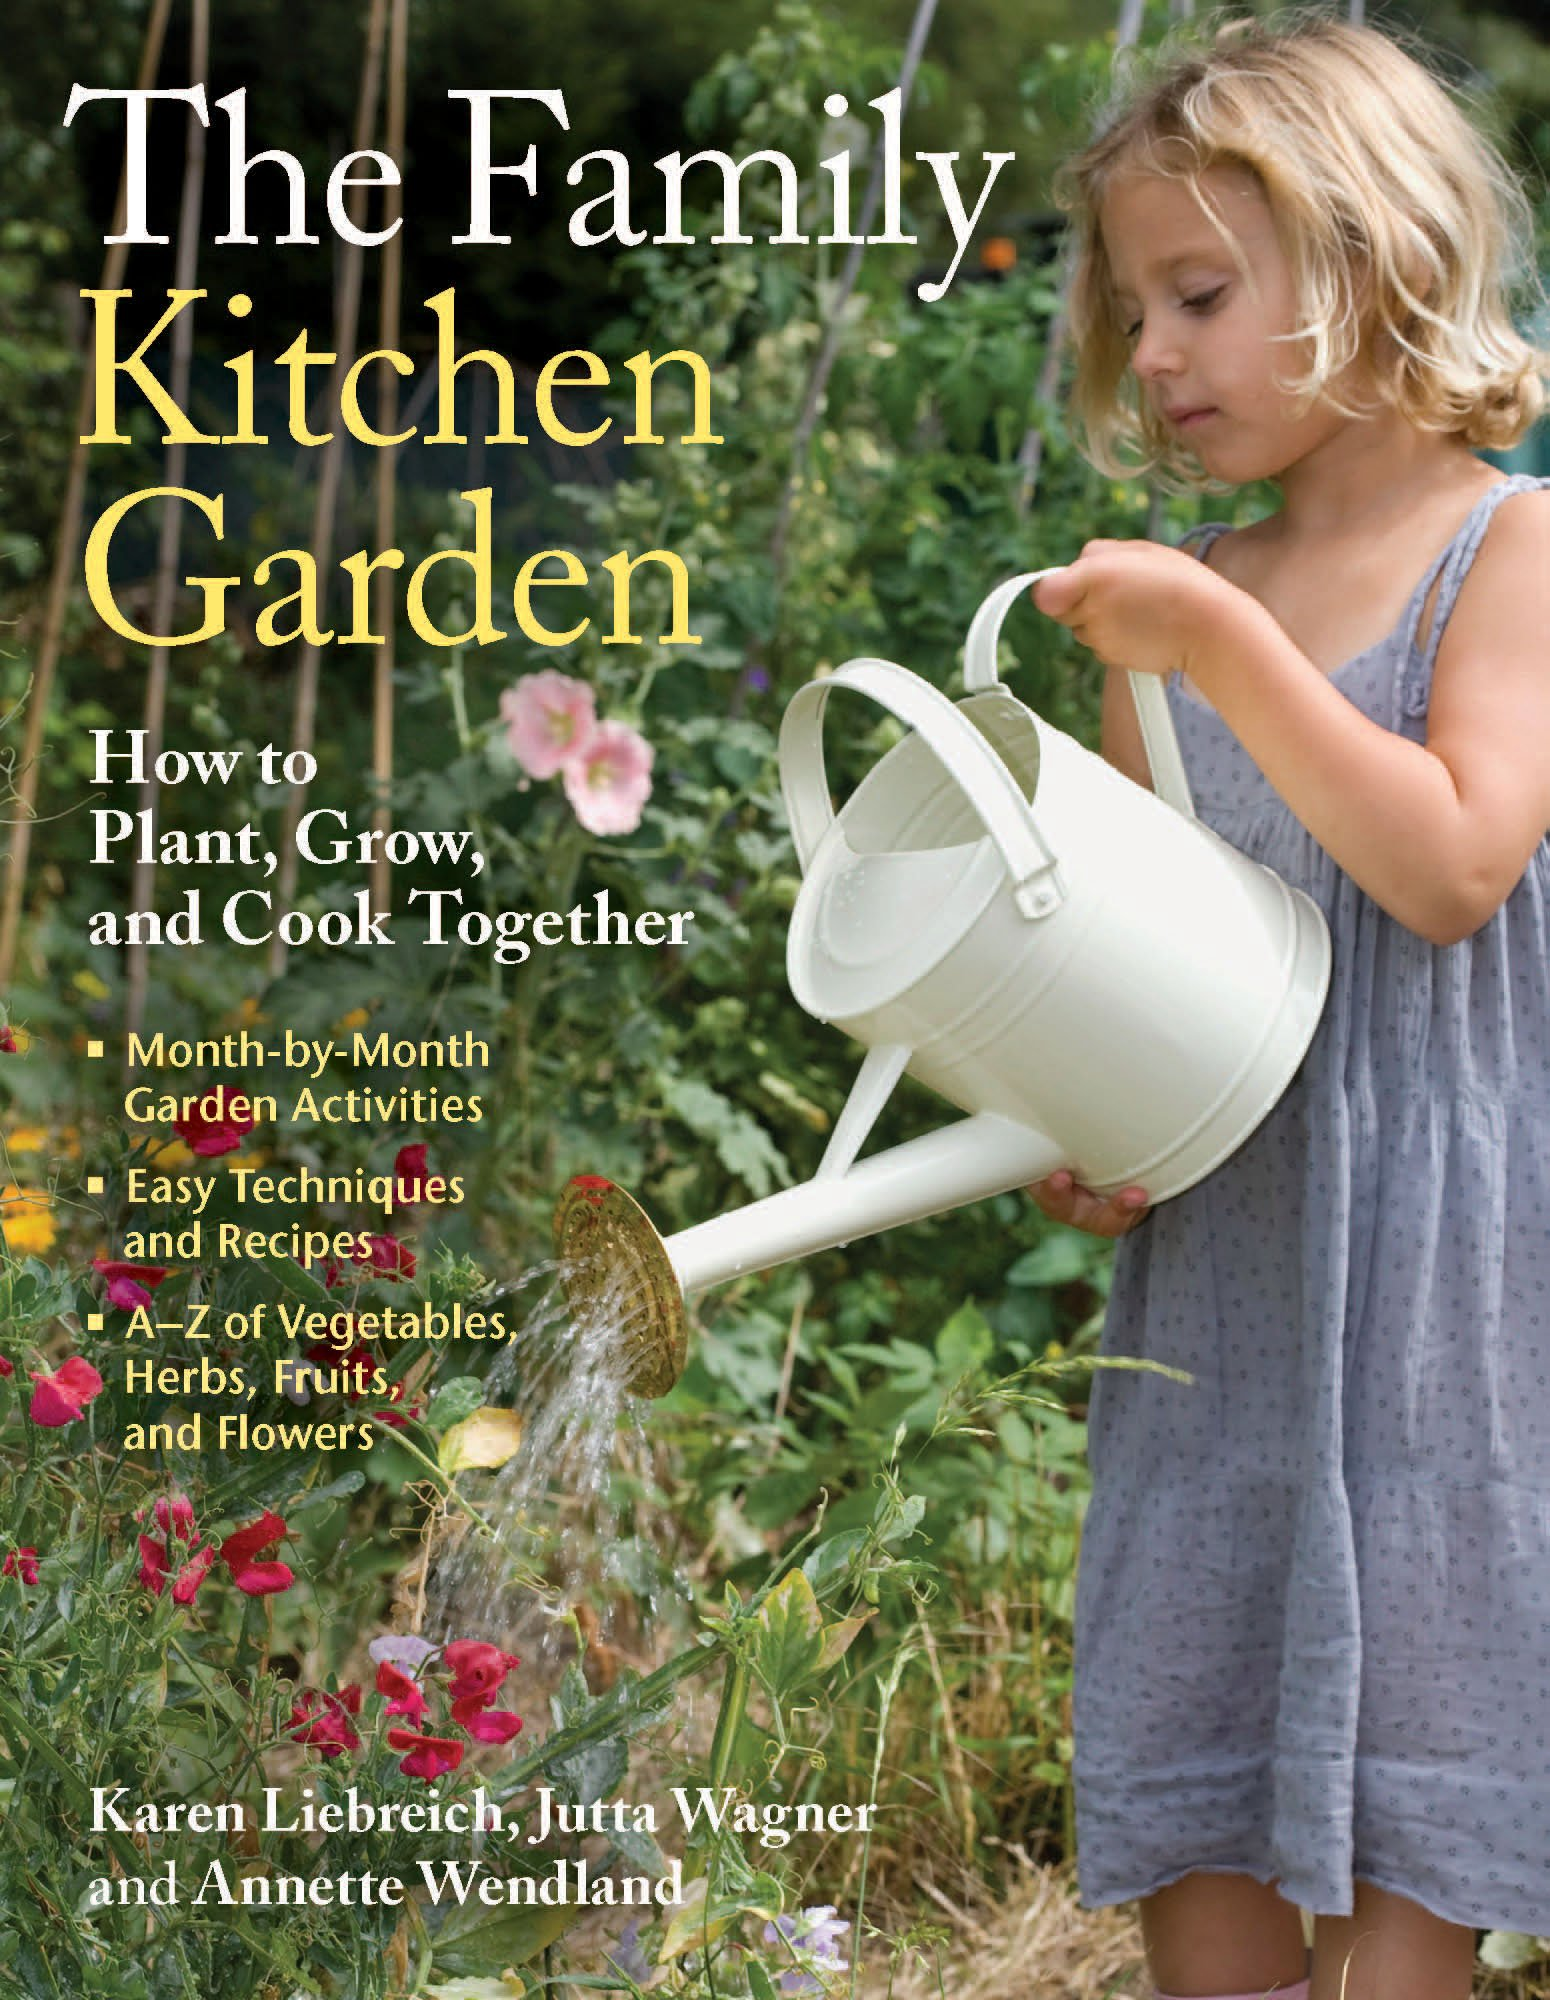 Kitchen Gardening The Family Kitchen Garden How To Plant Grow And Cook Together